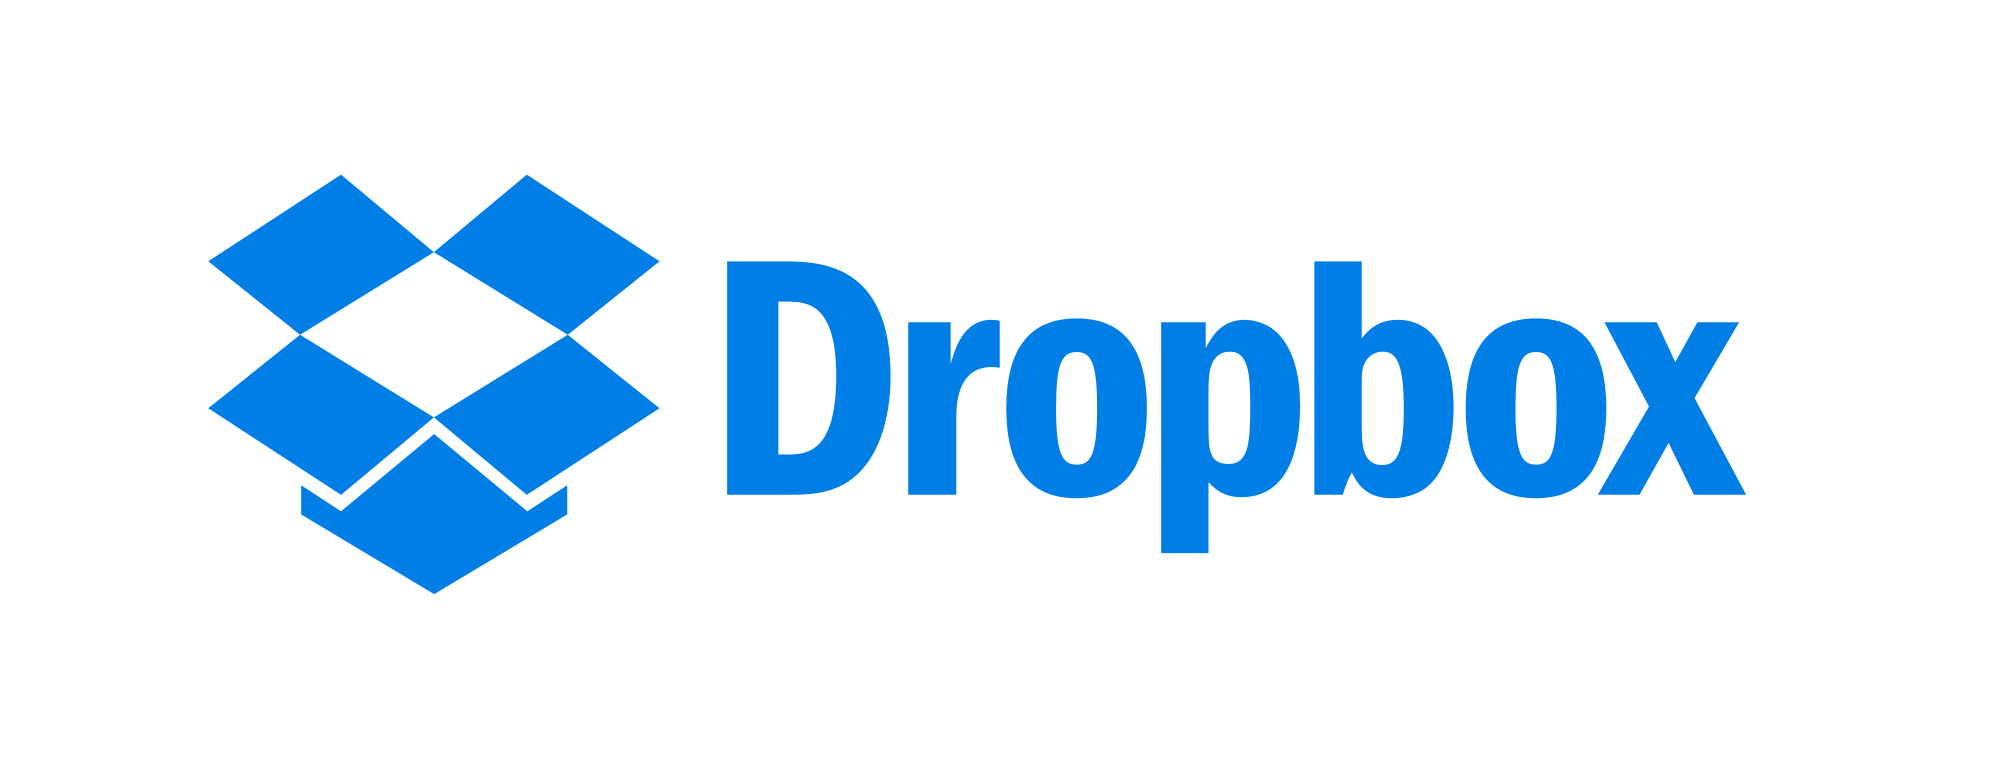 A Dropbox update brings new features for iOS 9 and iPhone 6s users